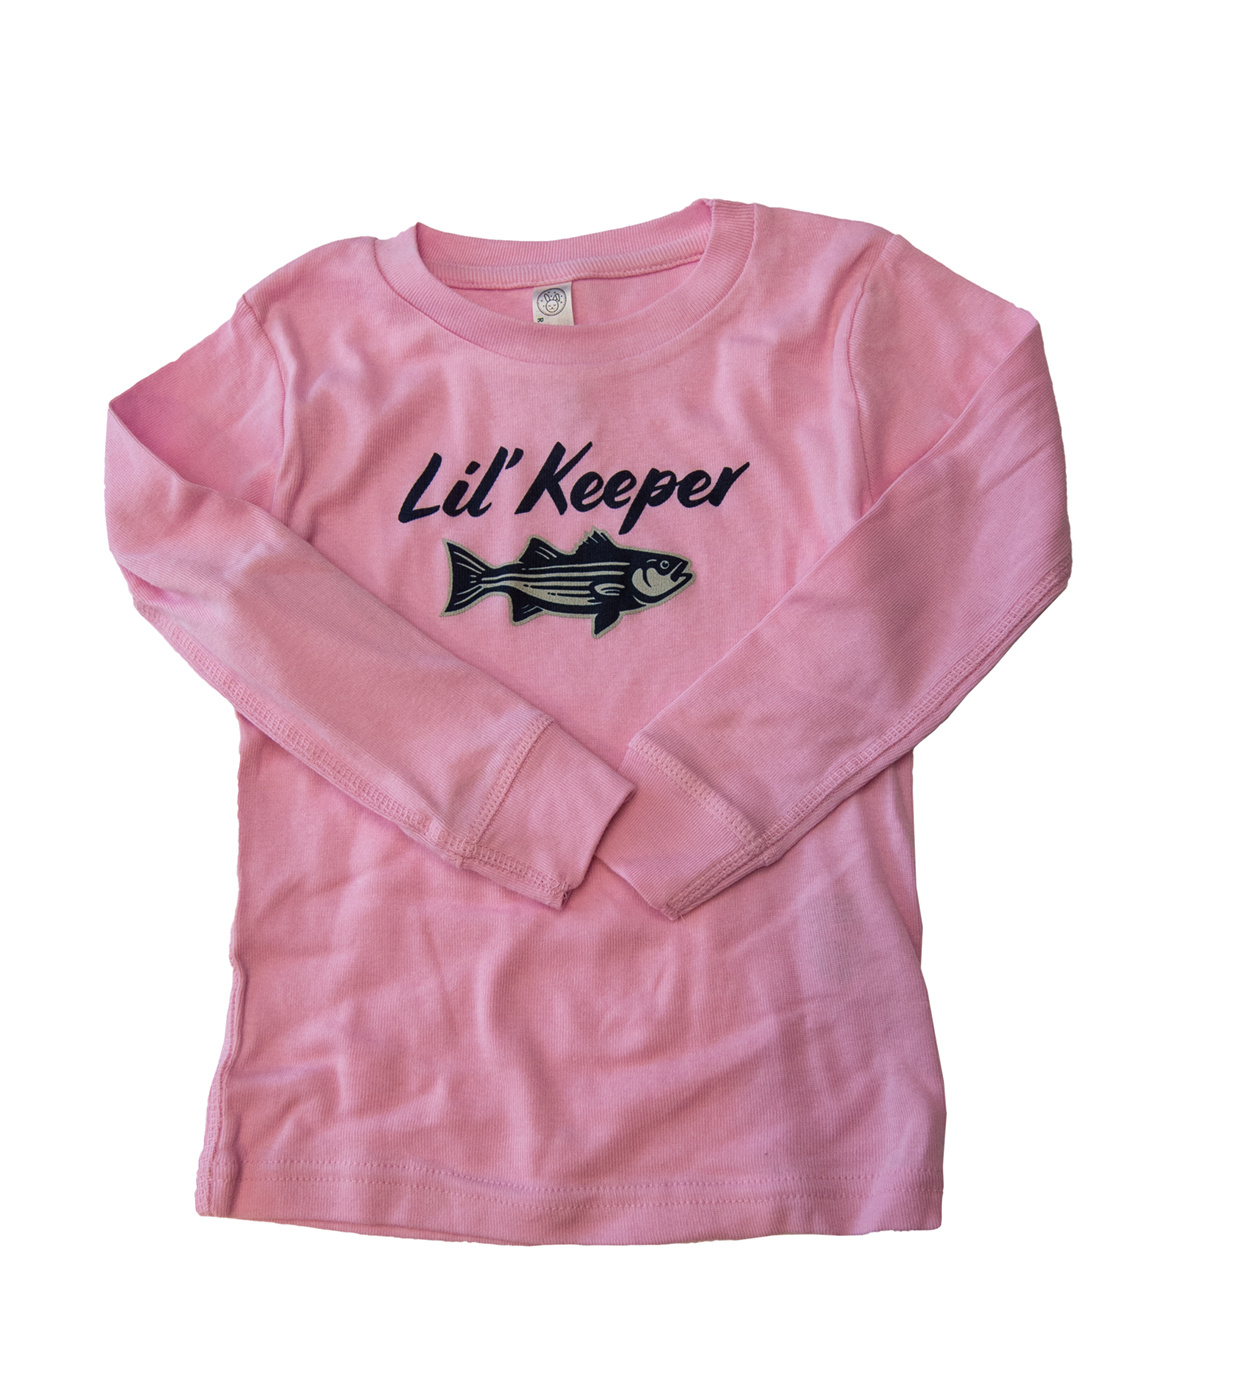 Lil Keeper Lounge Top